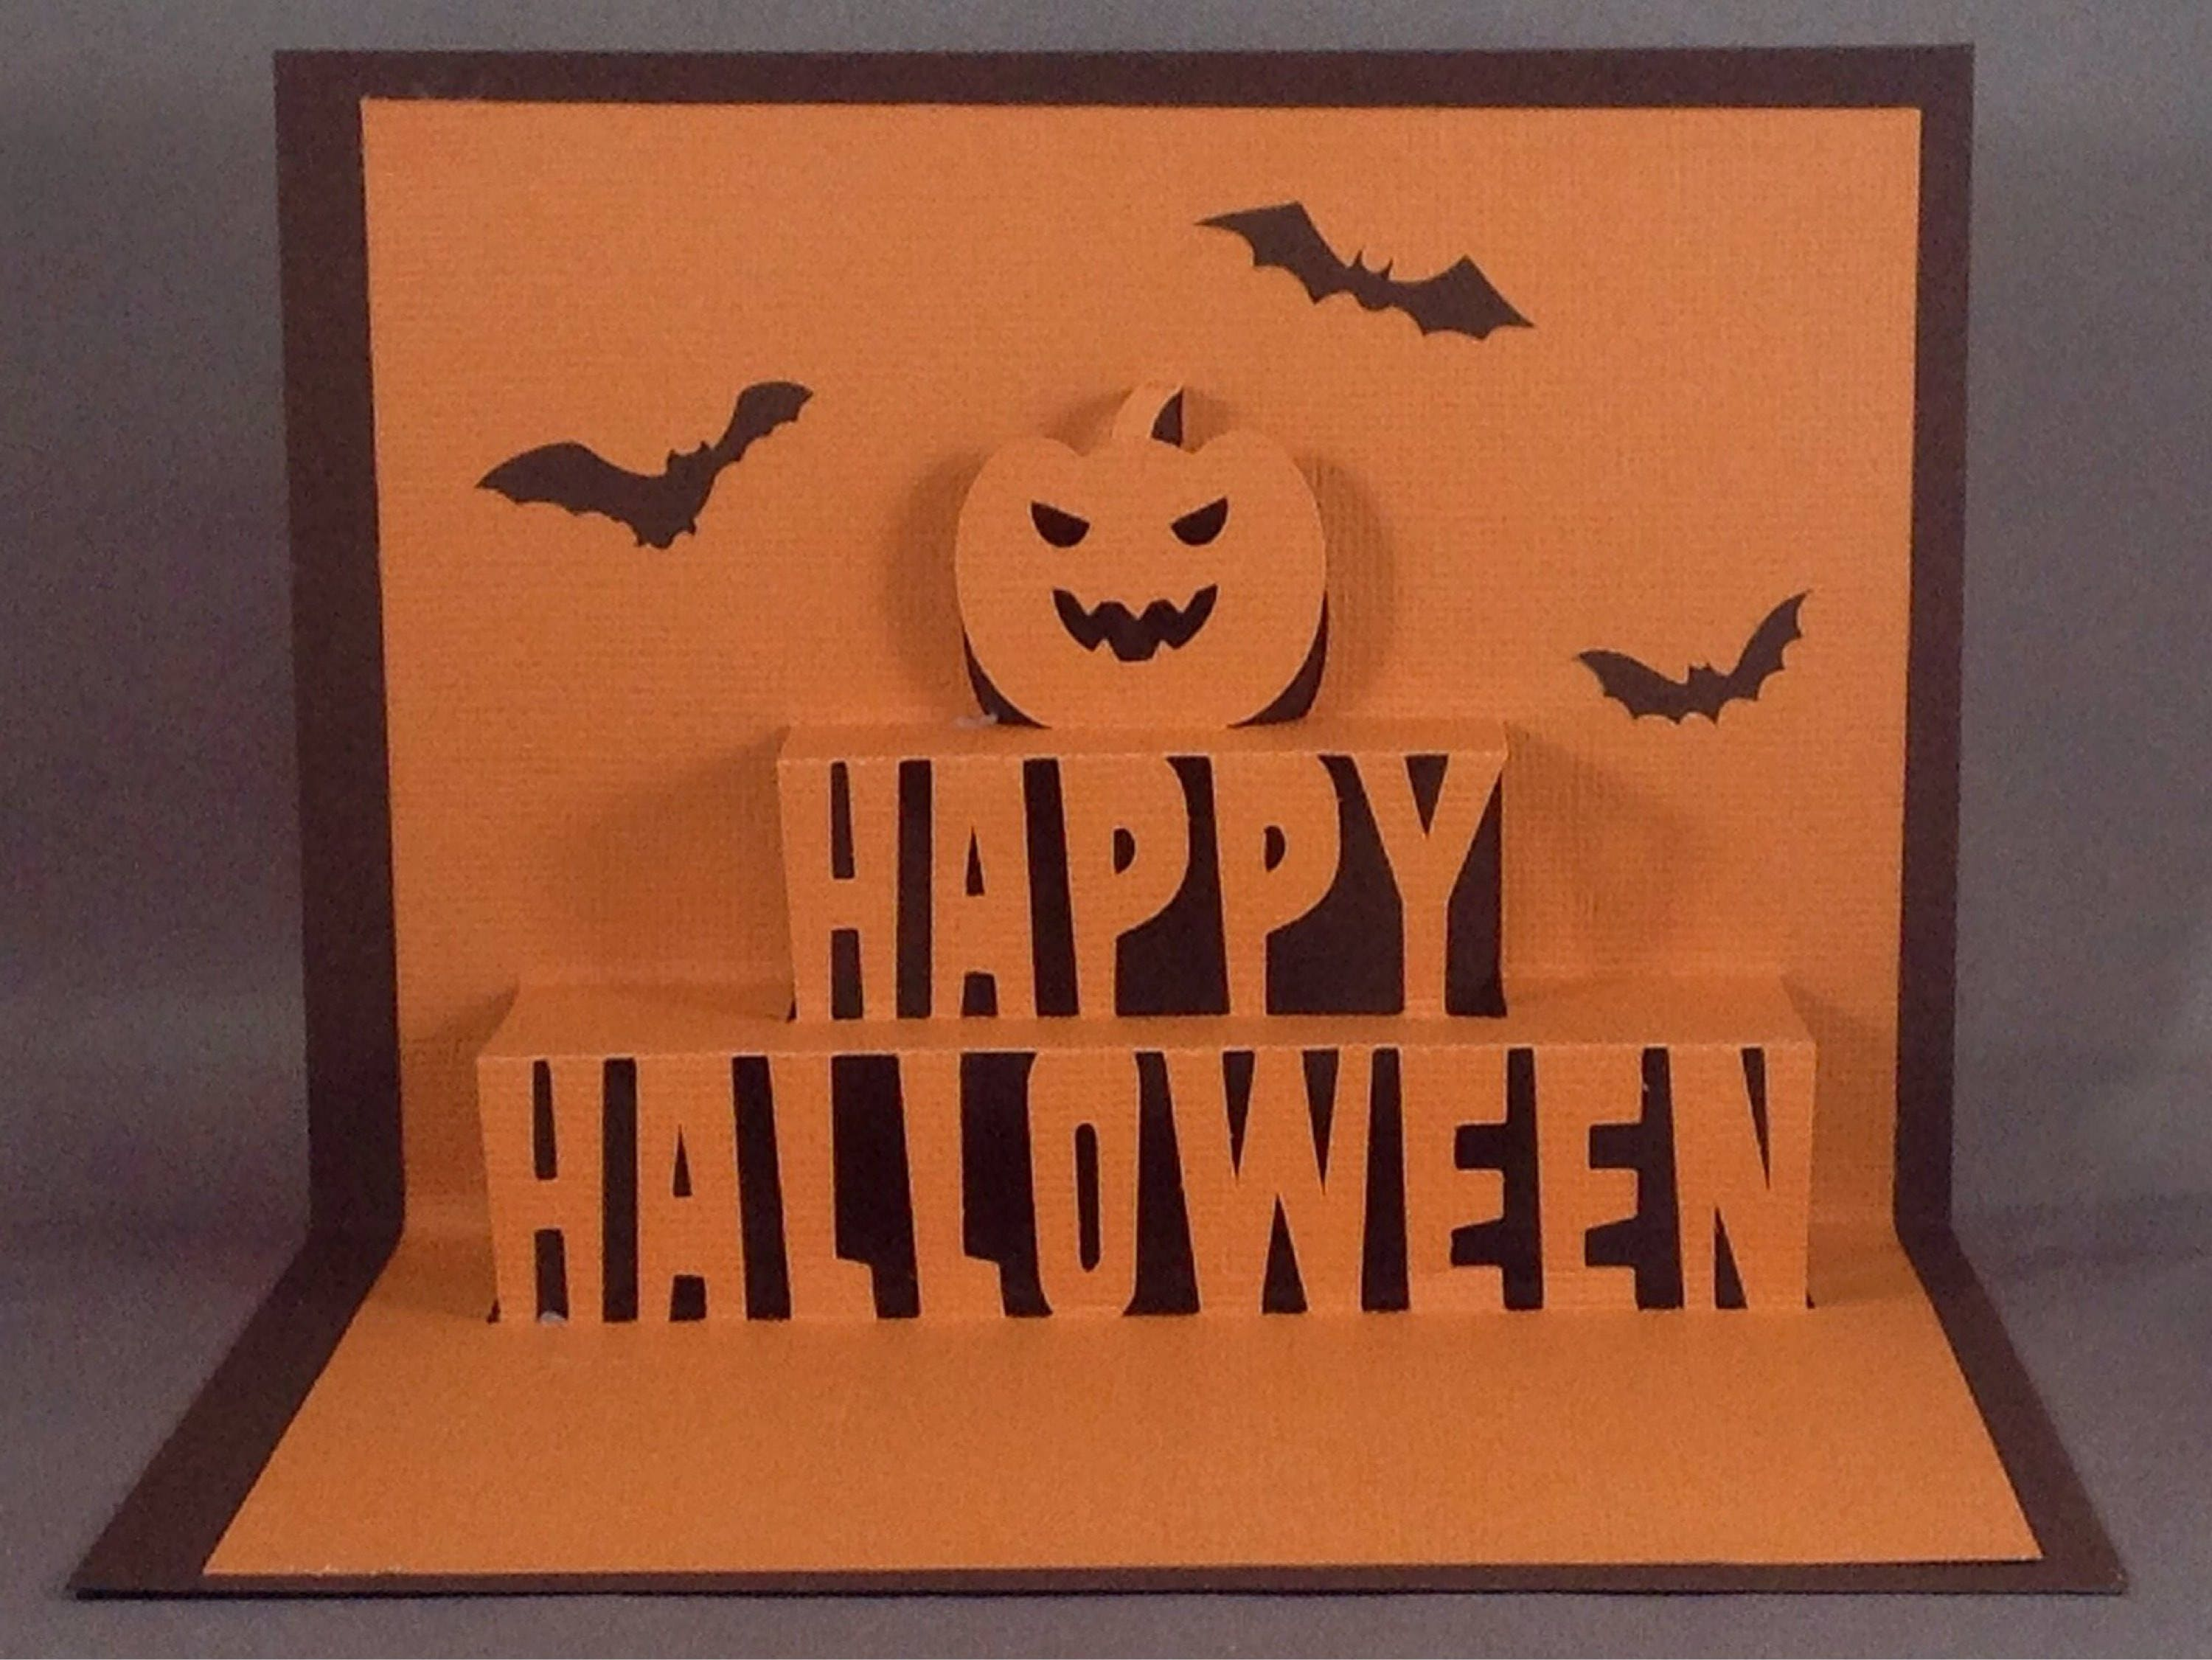 Cute Halloween Cards with Halloween Bat & Pumpkin Spice, Halloween ...